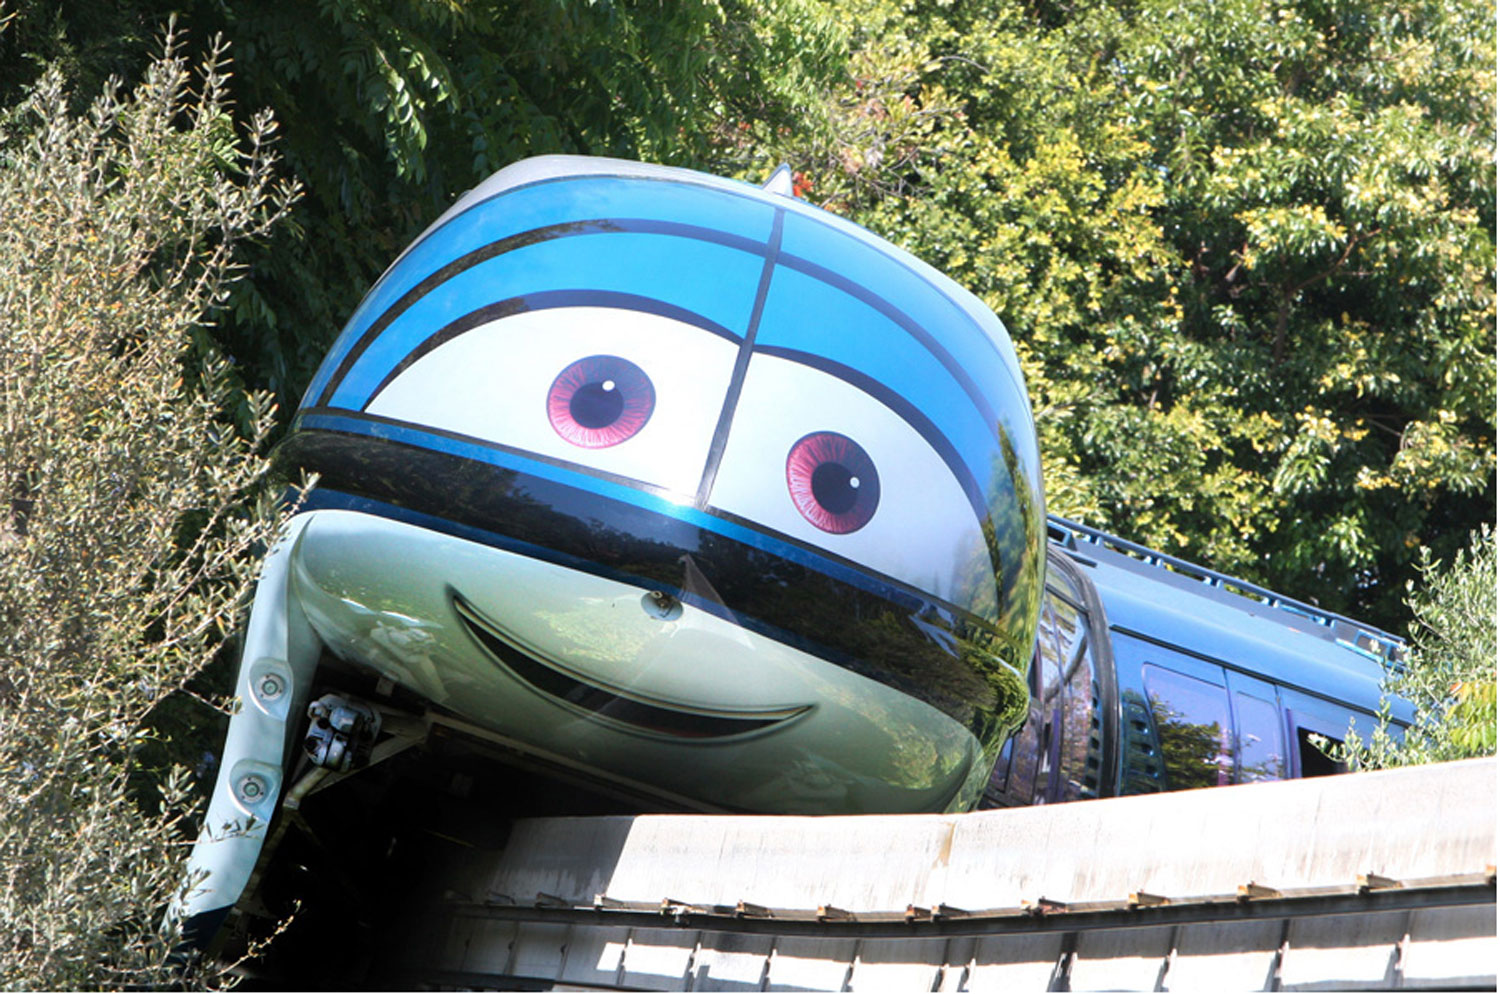 Mandy the Monorail at Disneyland